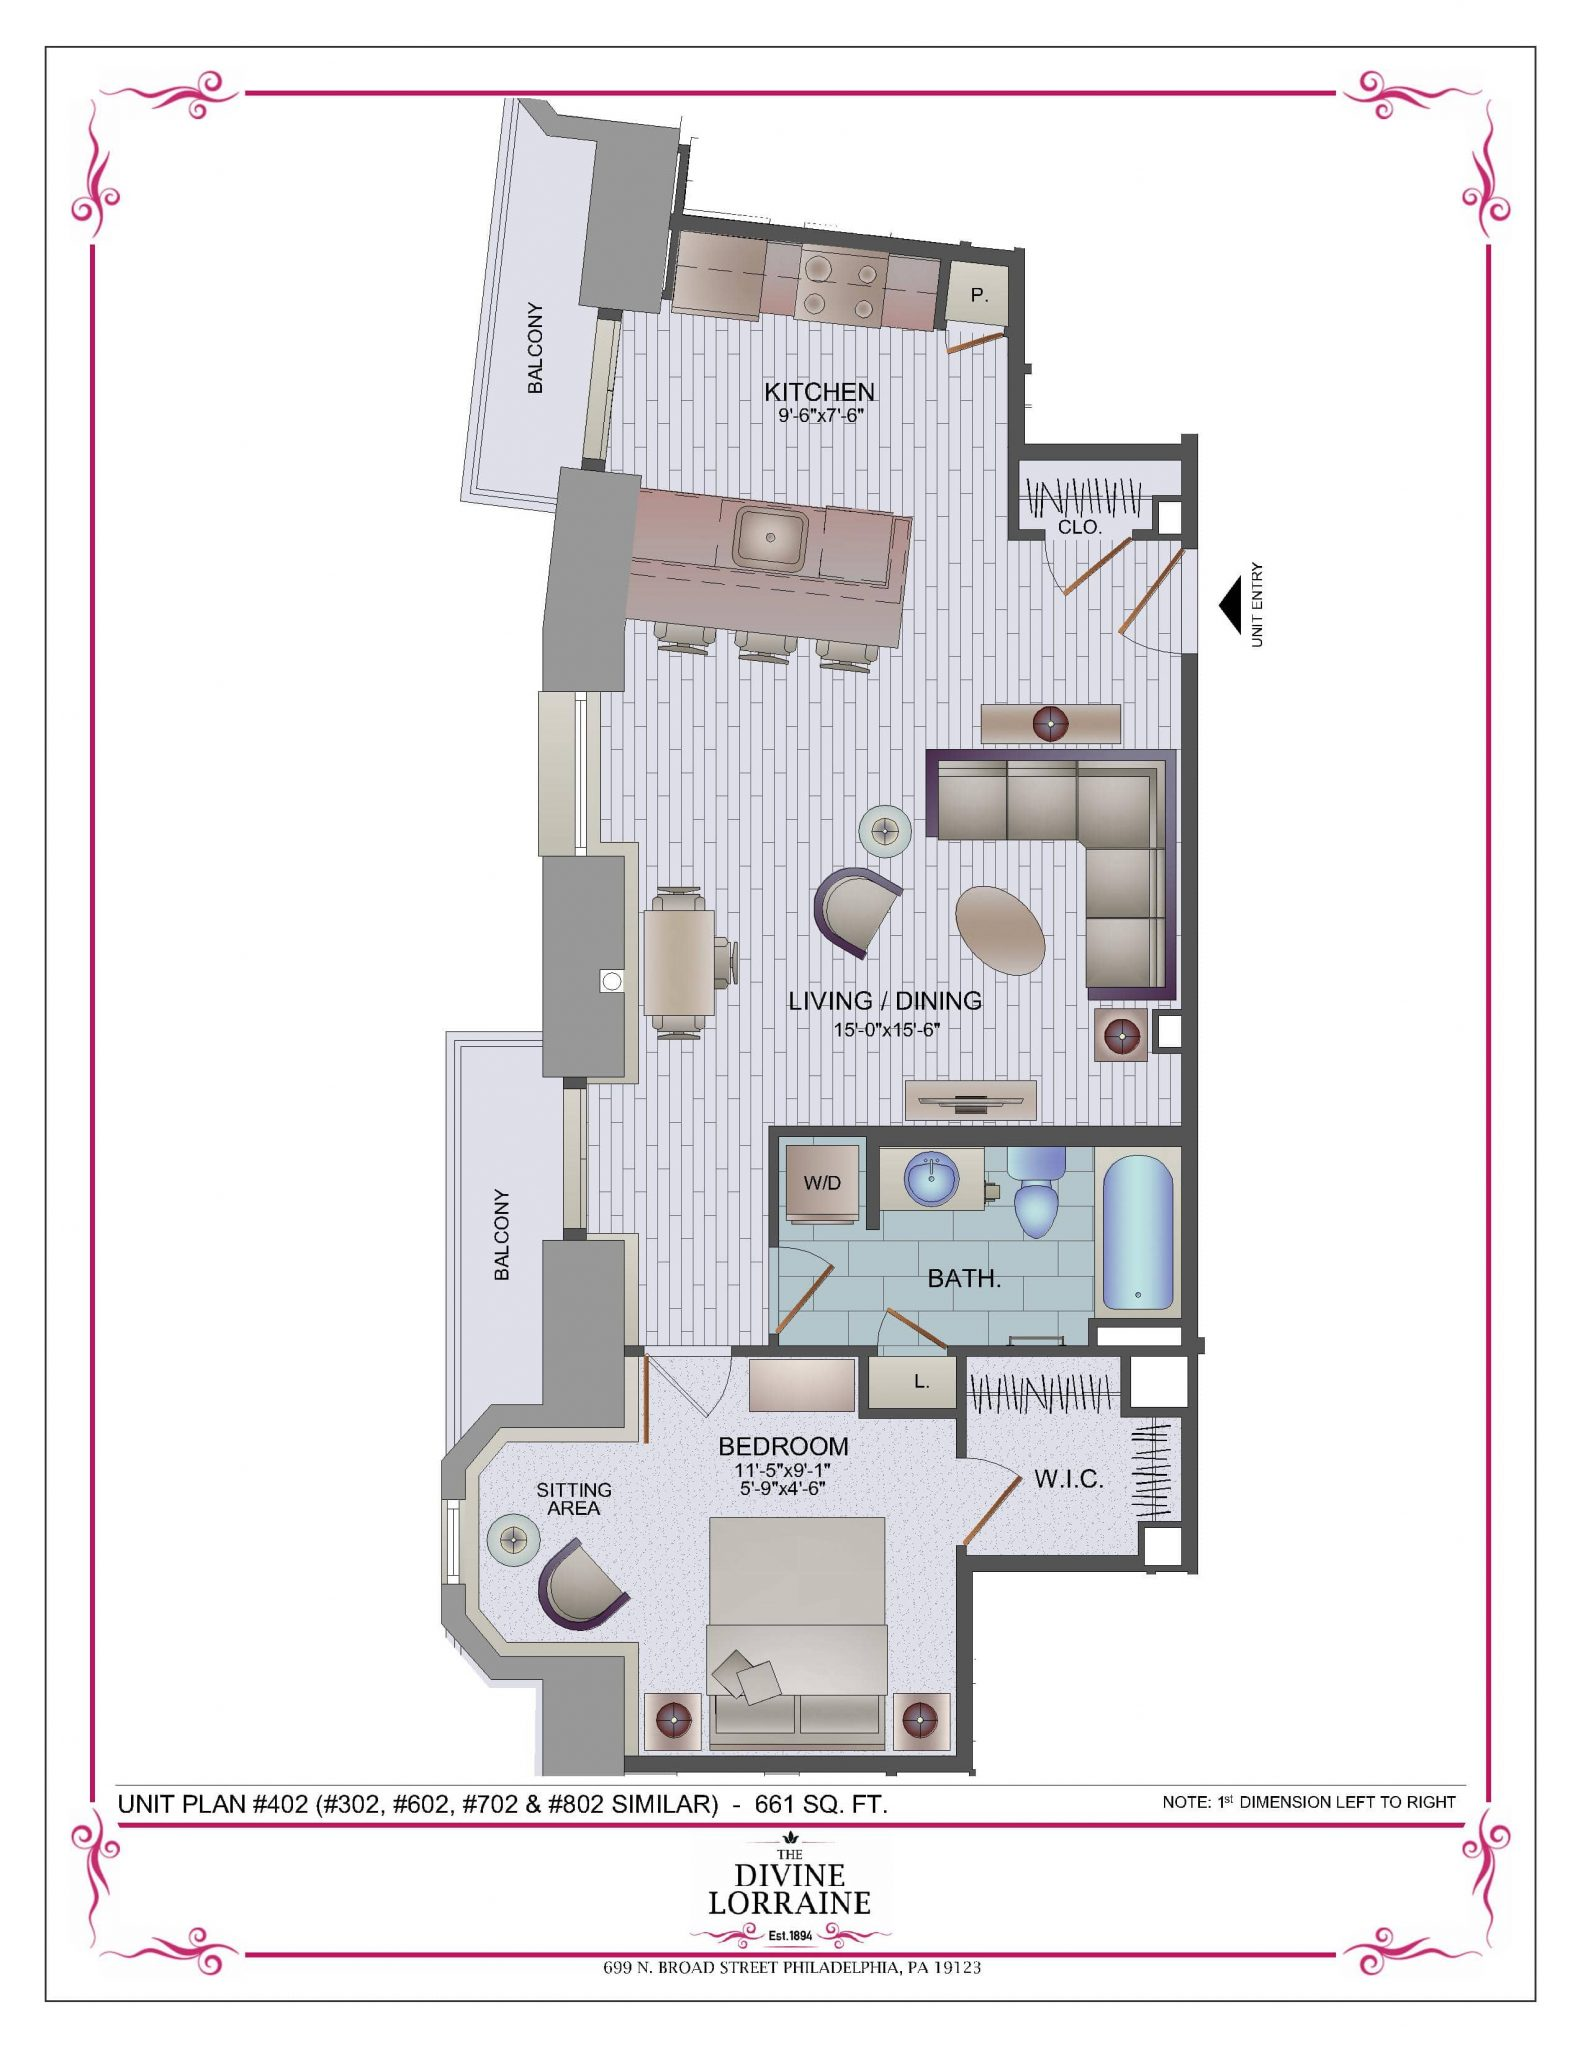 floor plans the divine lorraine hotel button text